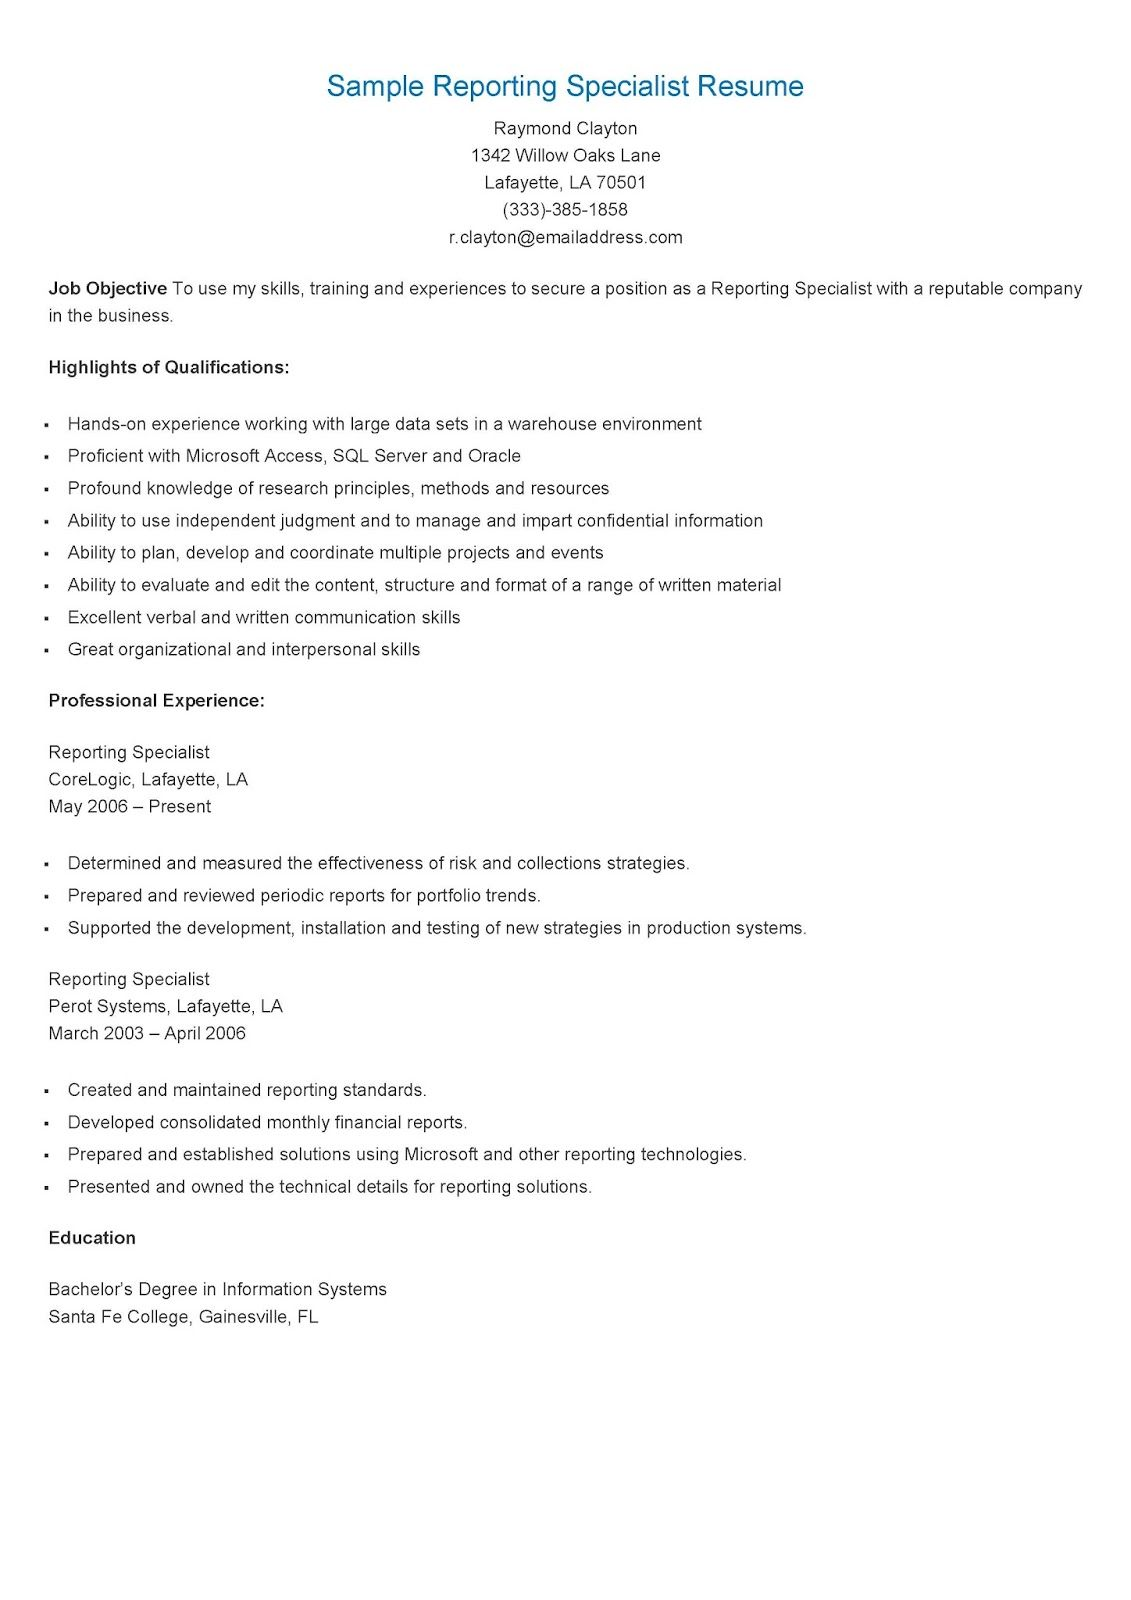 sample reporting specialist resume resame pinterest